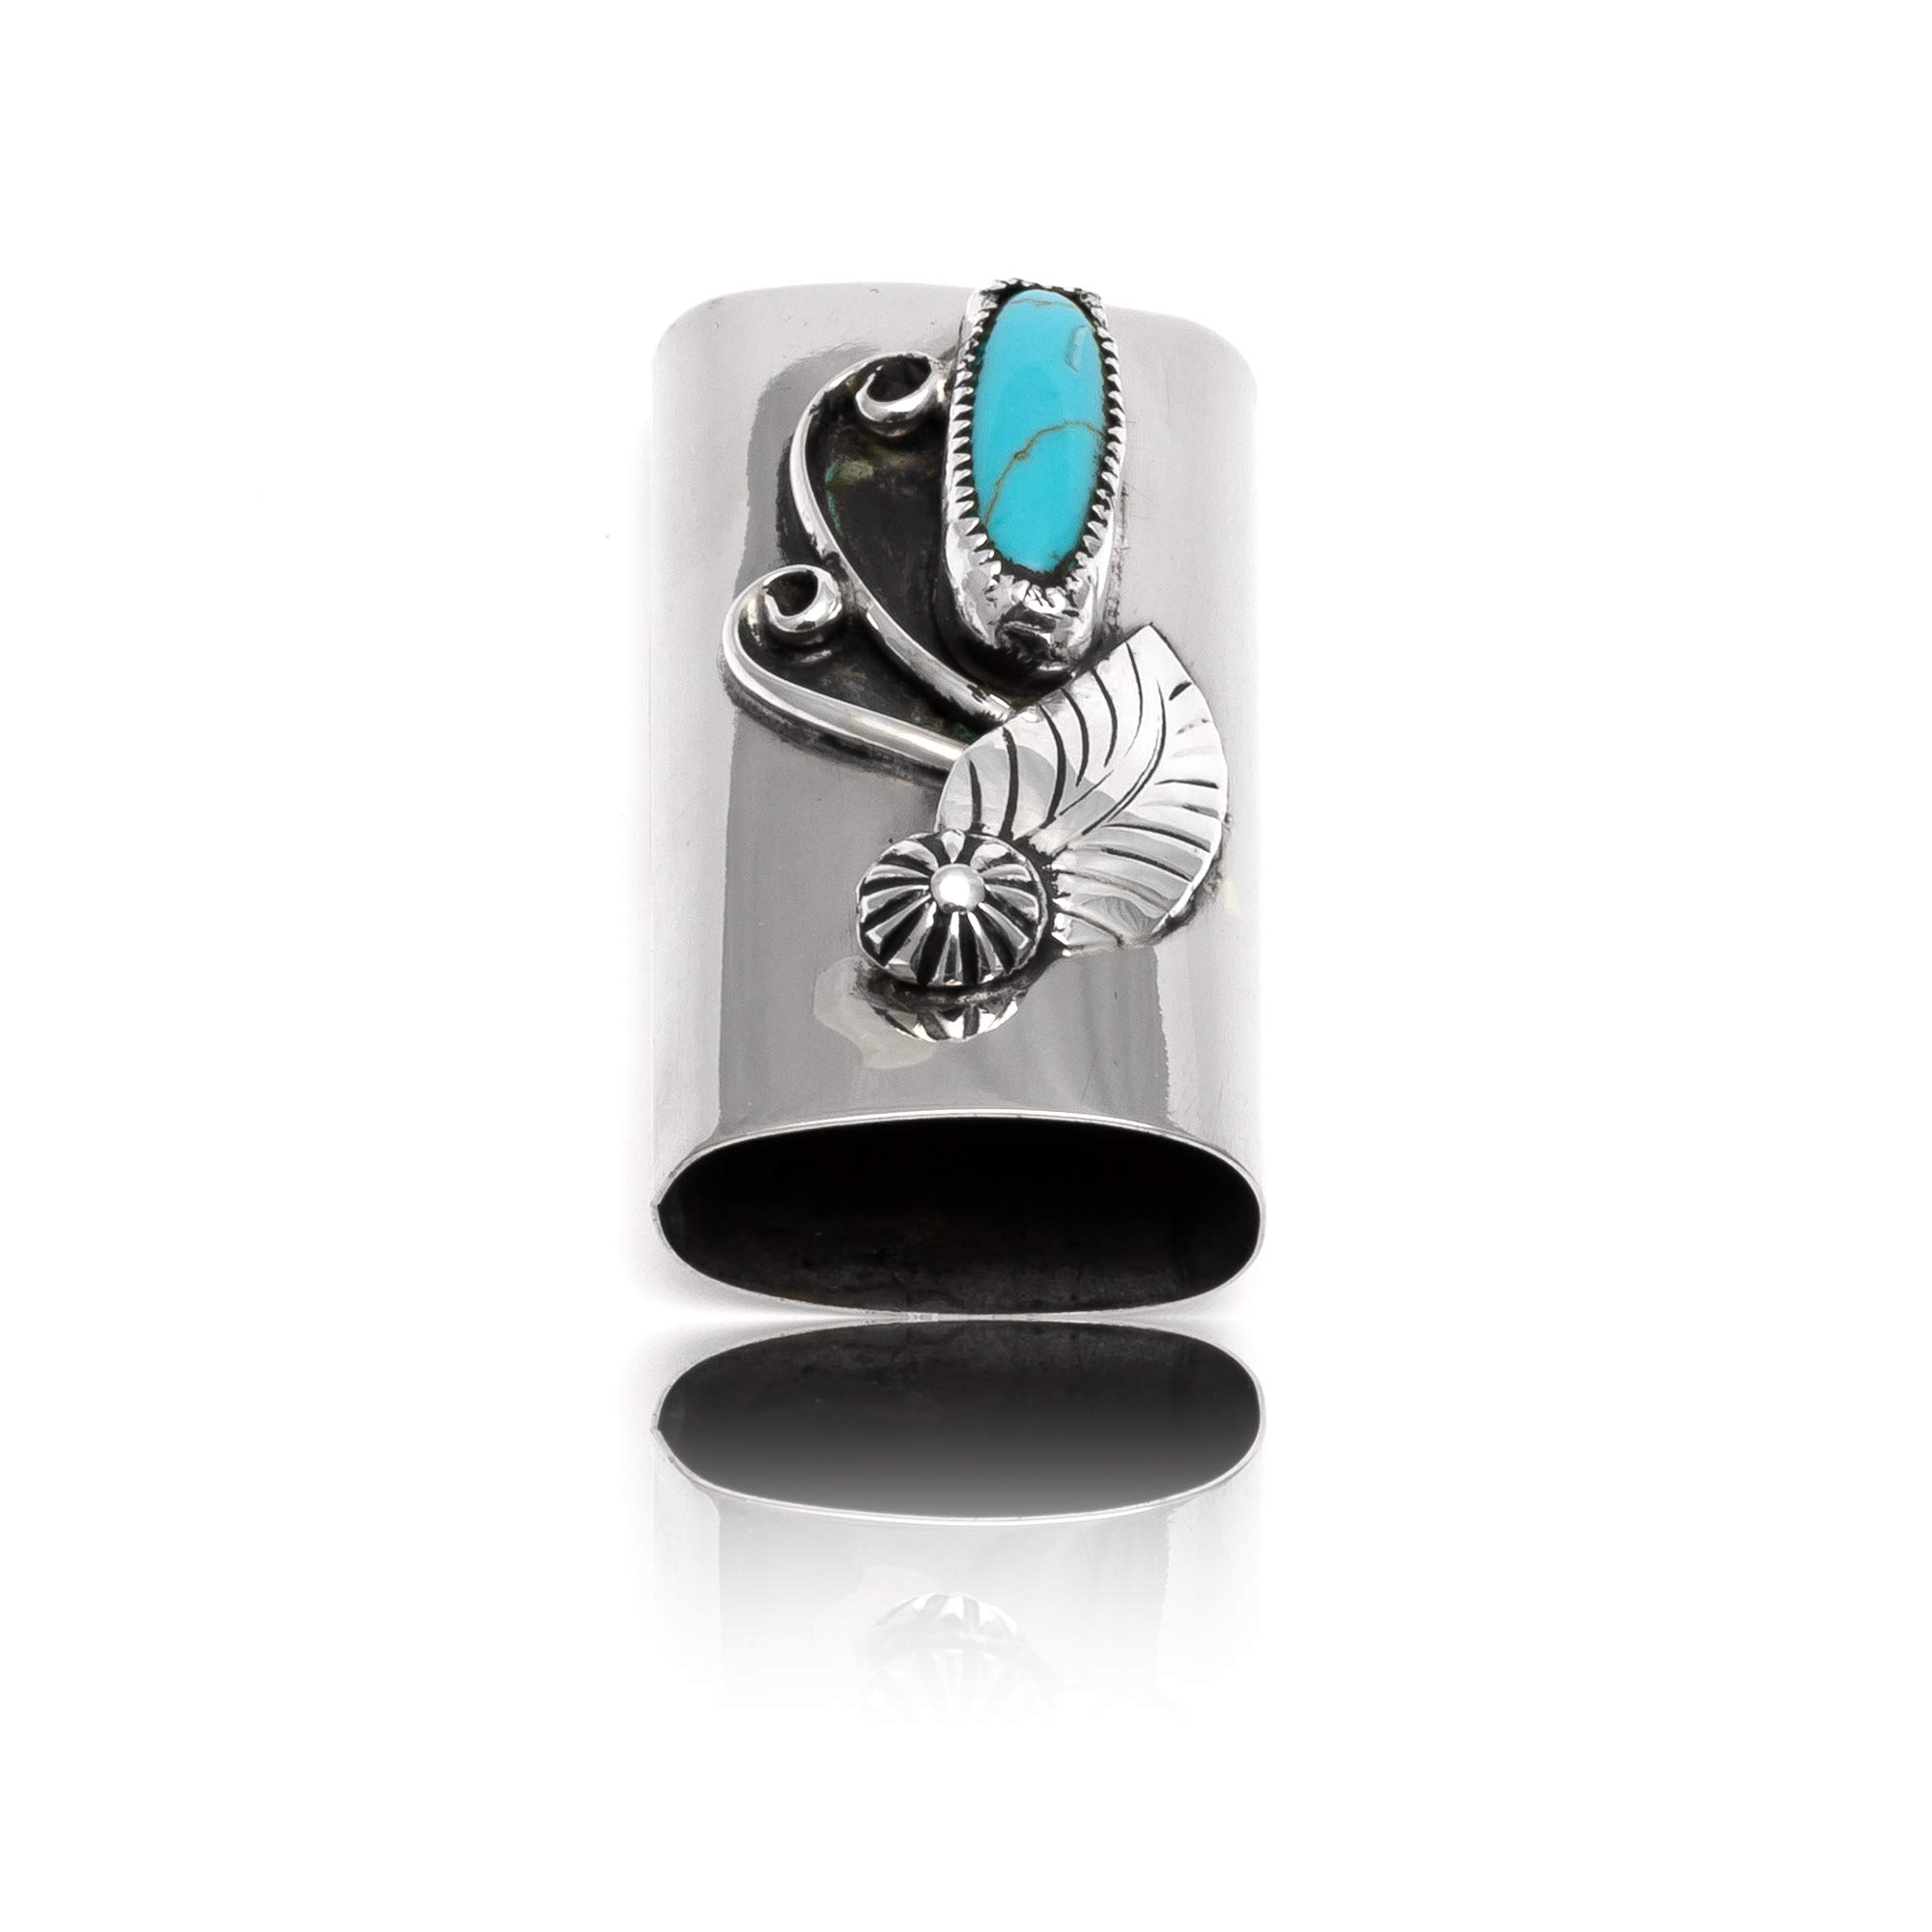 Native-Bay $200Tag Turquoise Silver Nickel Certified Navajo Flower Leaf Lighter Case 18334 Made by Loma Siiva by Native-Bay (Image #8)